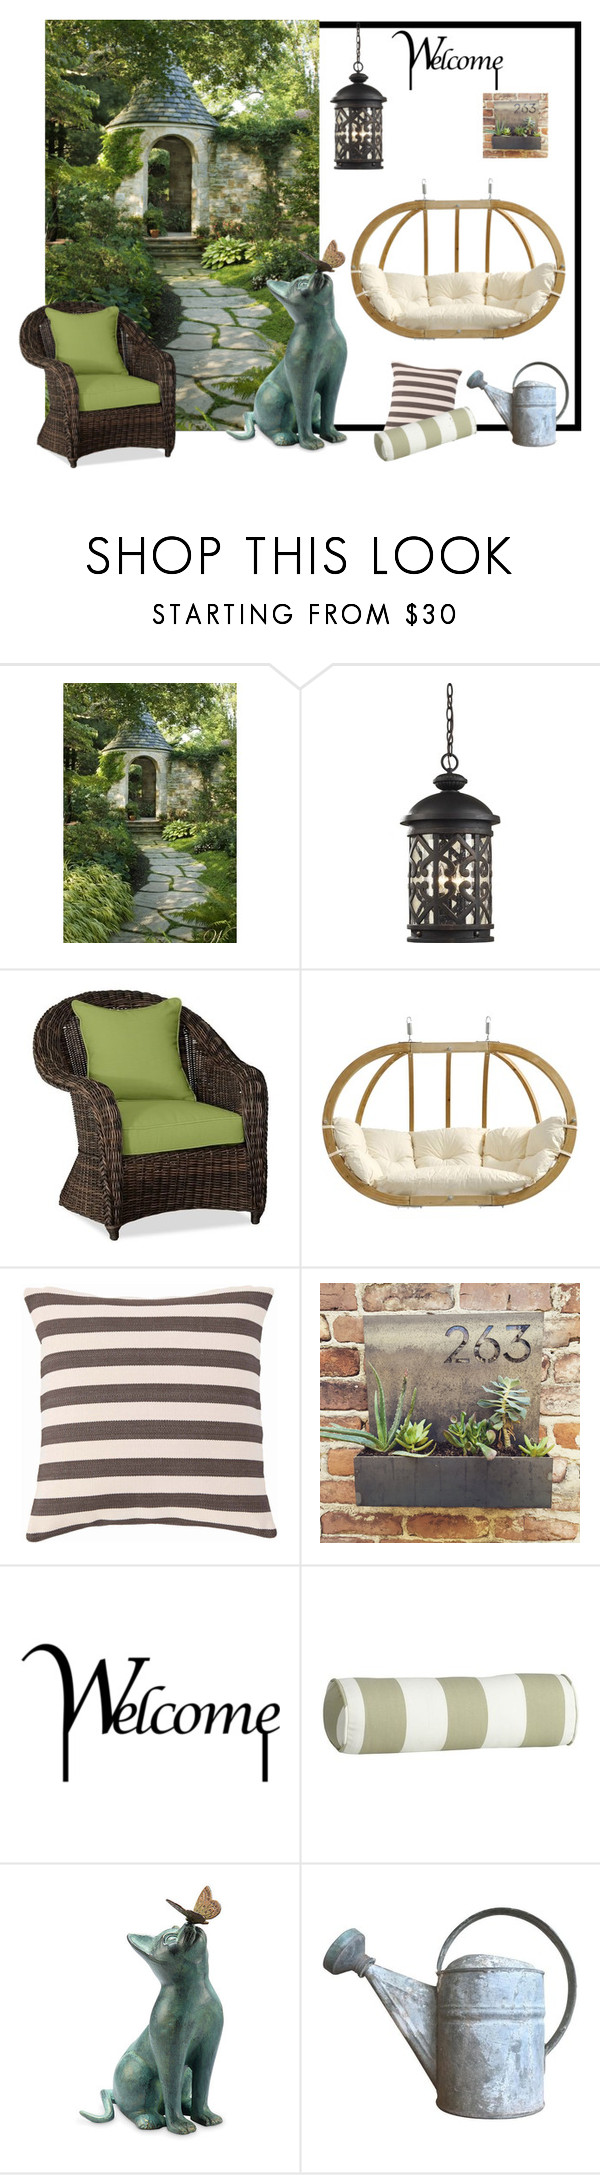 """My garden's corner!"" by colchico ❤ liked on Polyvore featuring interior, interiors, interior design, home, home decor, interior decorating, ELK Lighting, Pottery Barn, Amazonas and Fresh American"